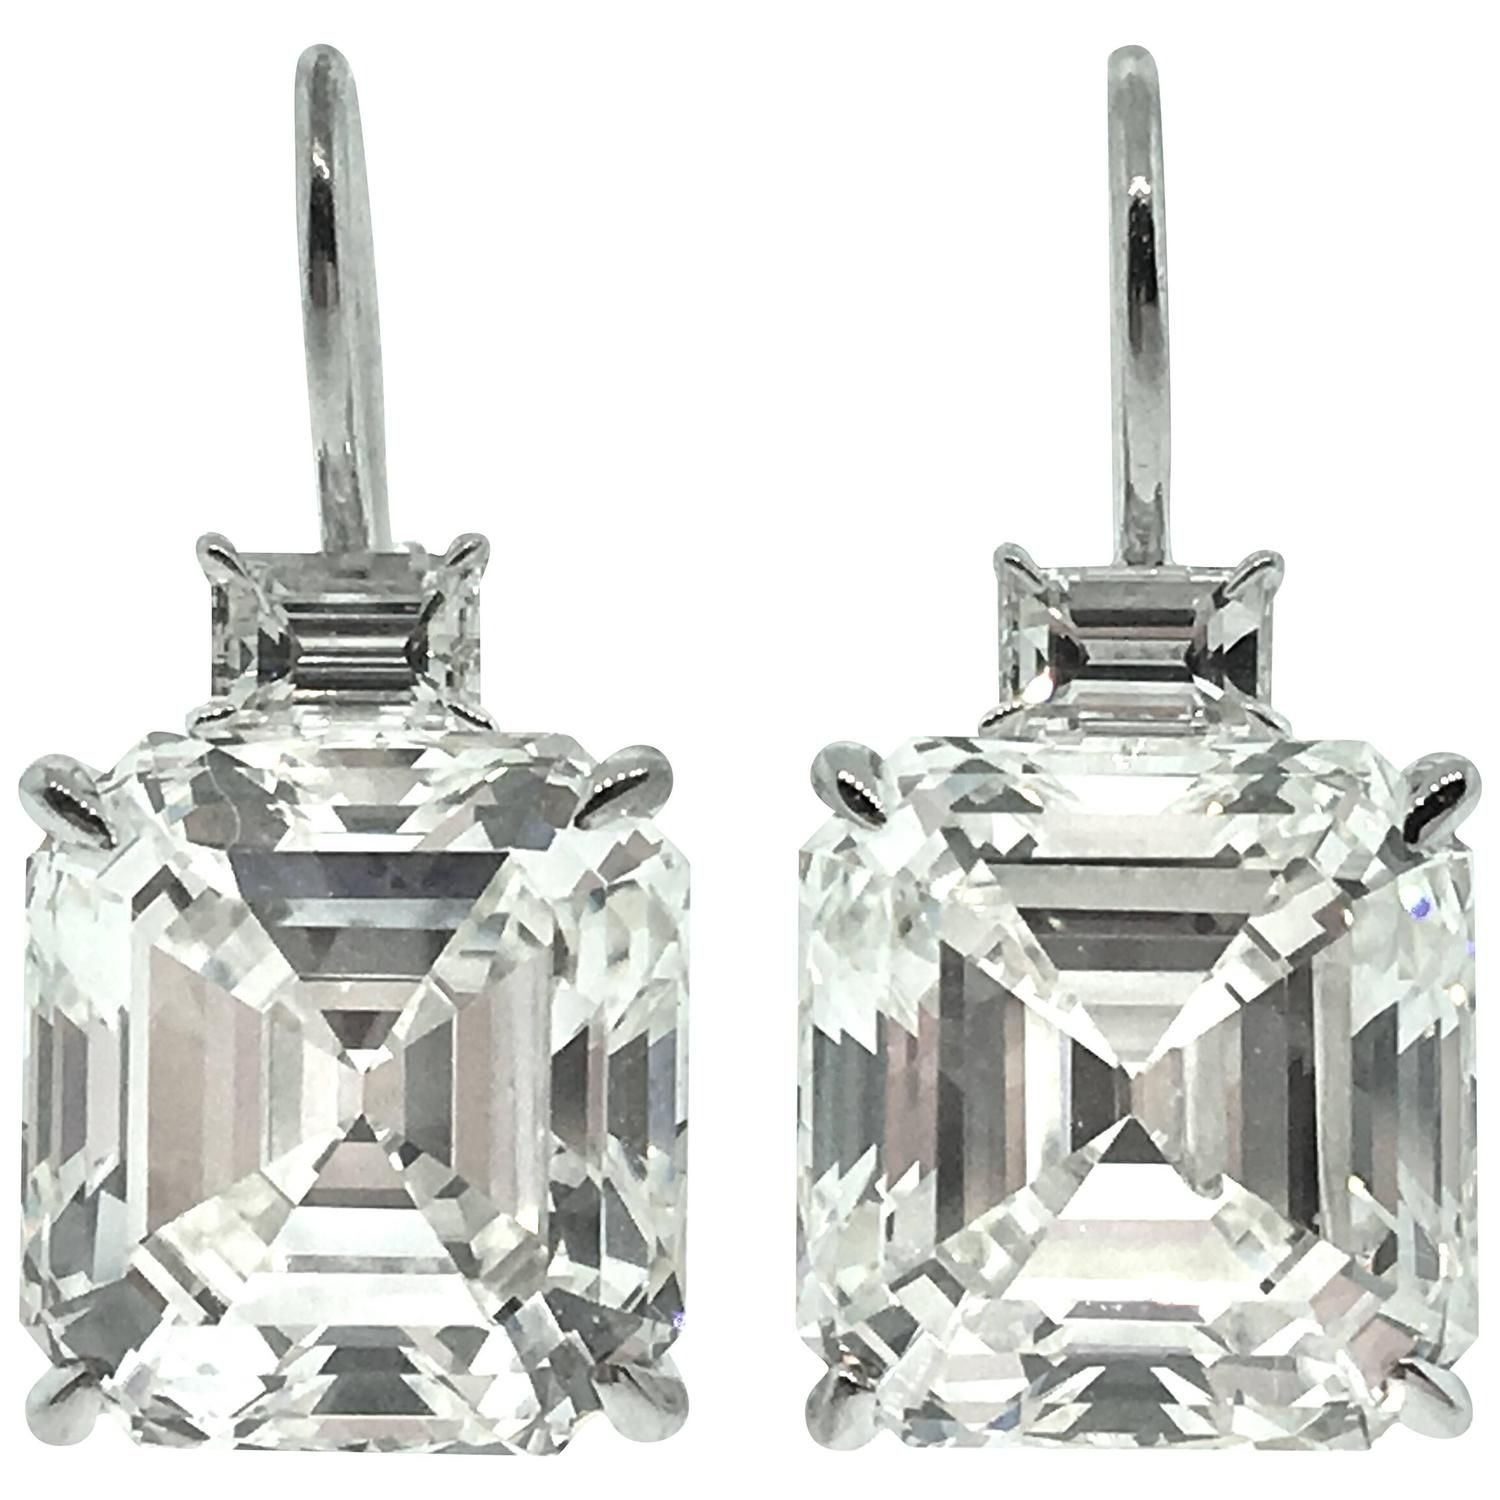 10 97 Ct Square Emerald Cut Diamond Drop Earrings See More Rare Vintage At